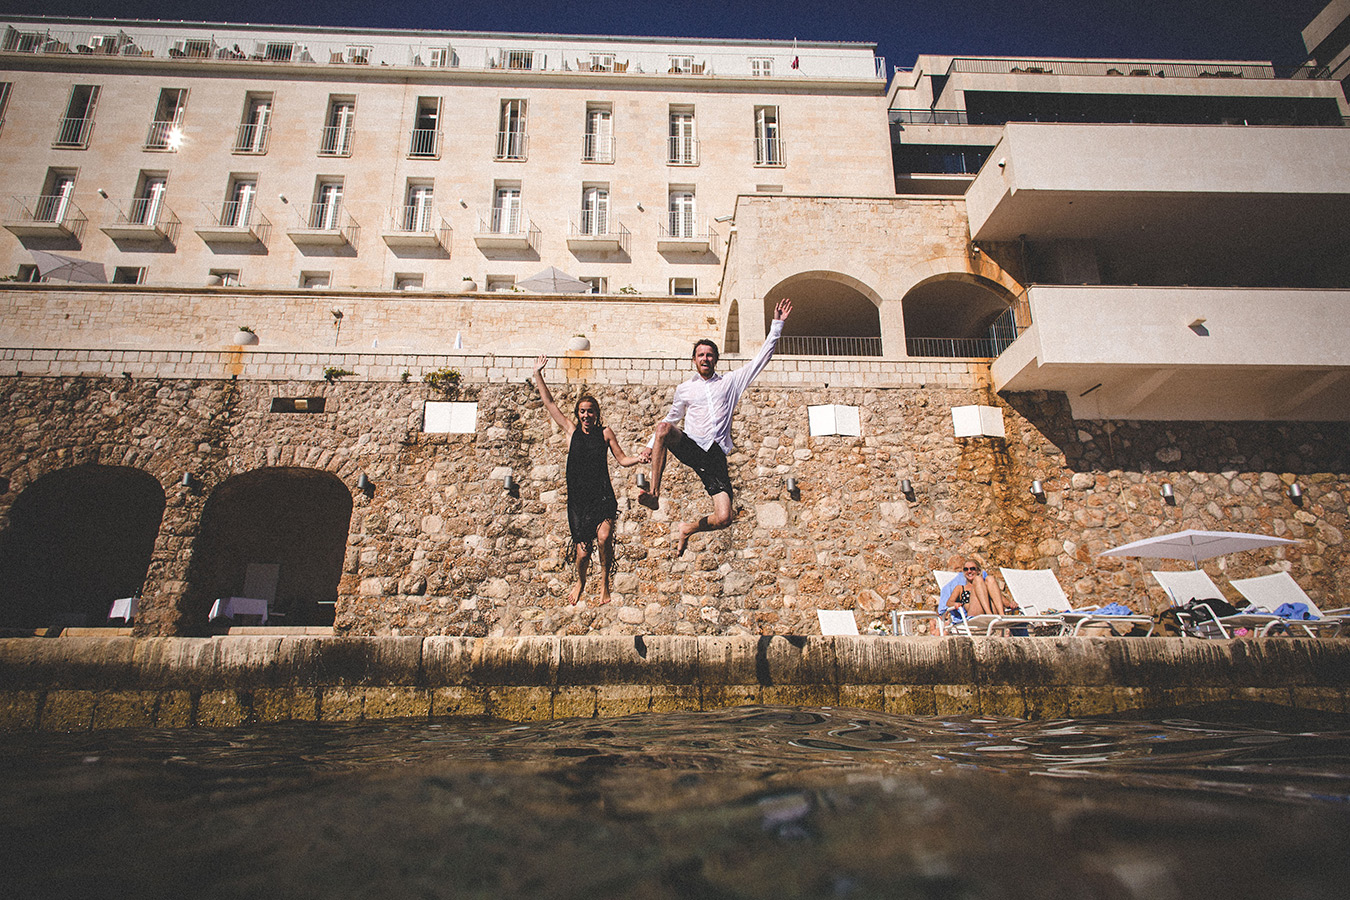 One of a set of images taken at this chic destination Wedding of Jenna & Nick. The stylish old town of Dubrovnik, Croatia.  The couple jump into the sea.  Photography by Matt Porteous